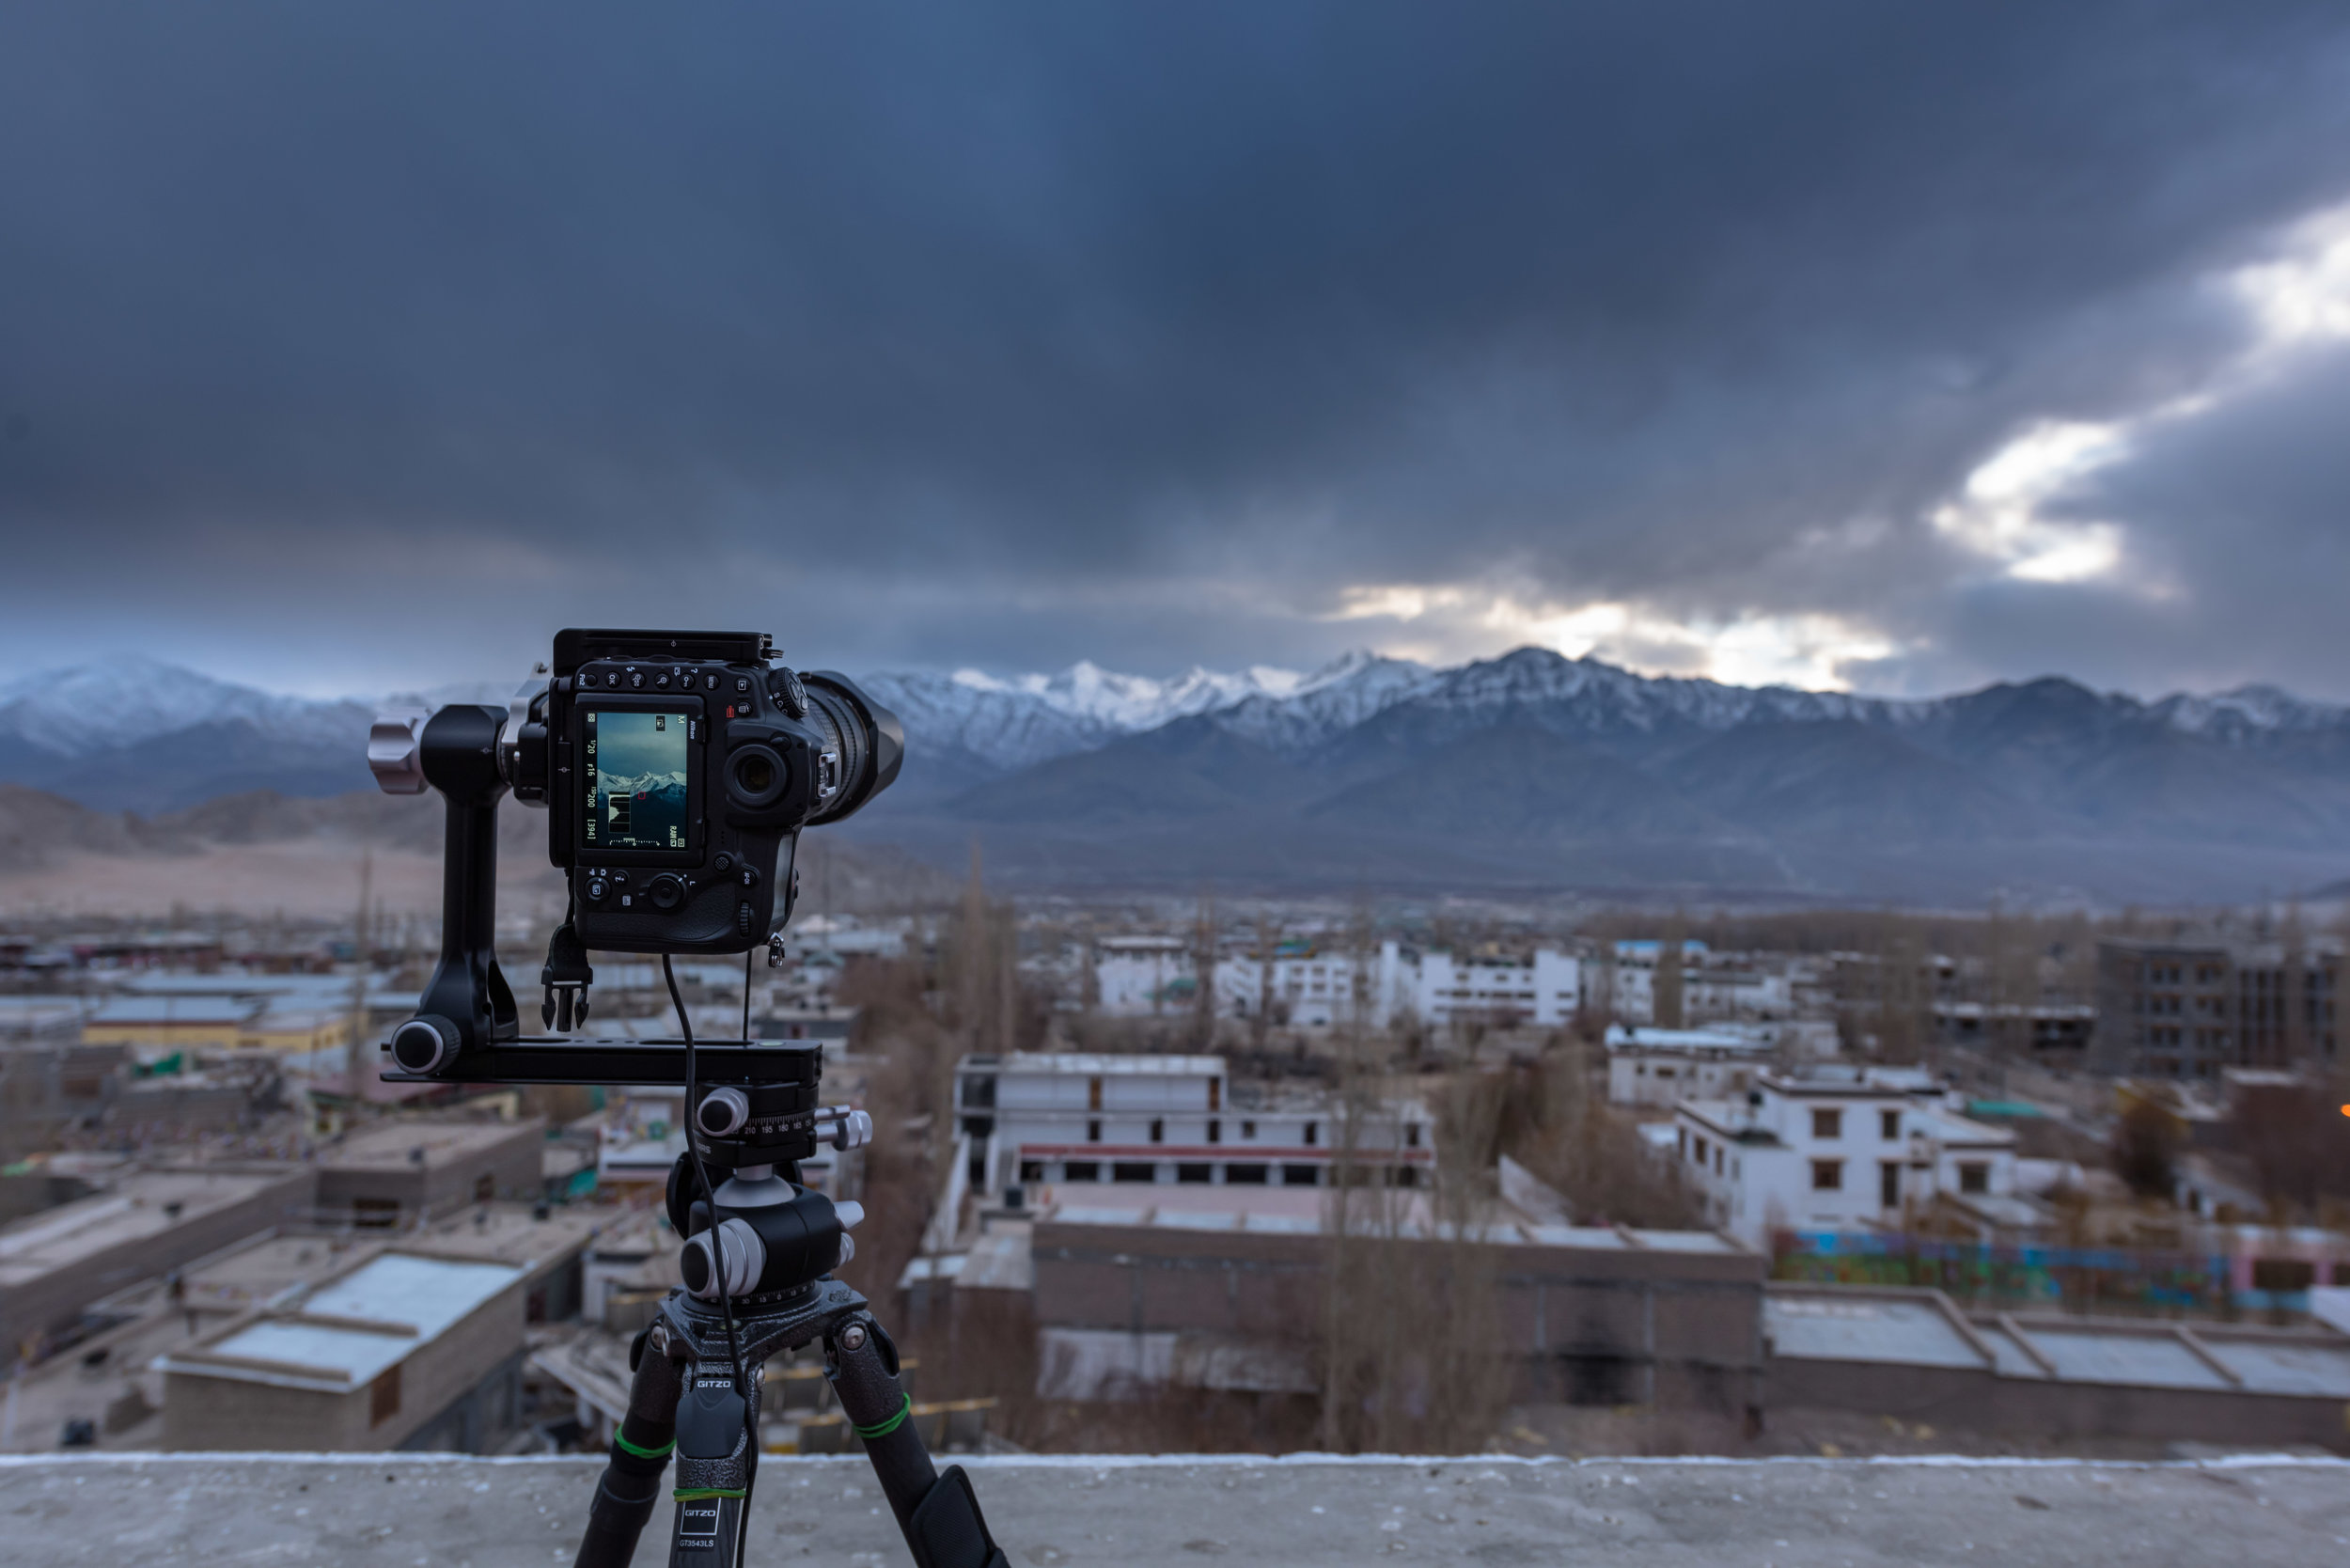 My Pano Gear in Action